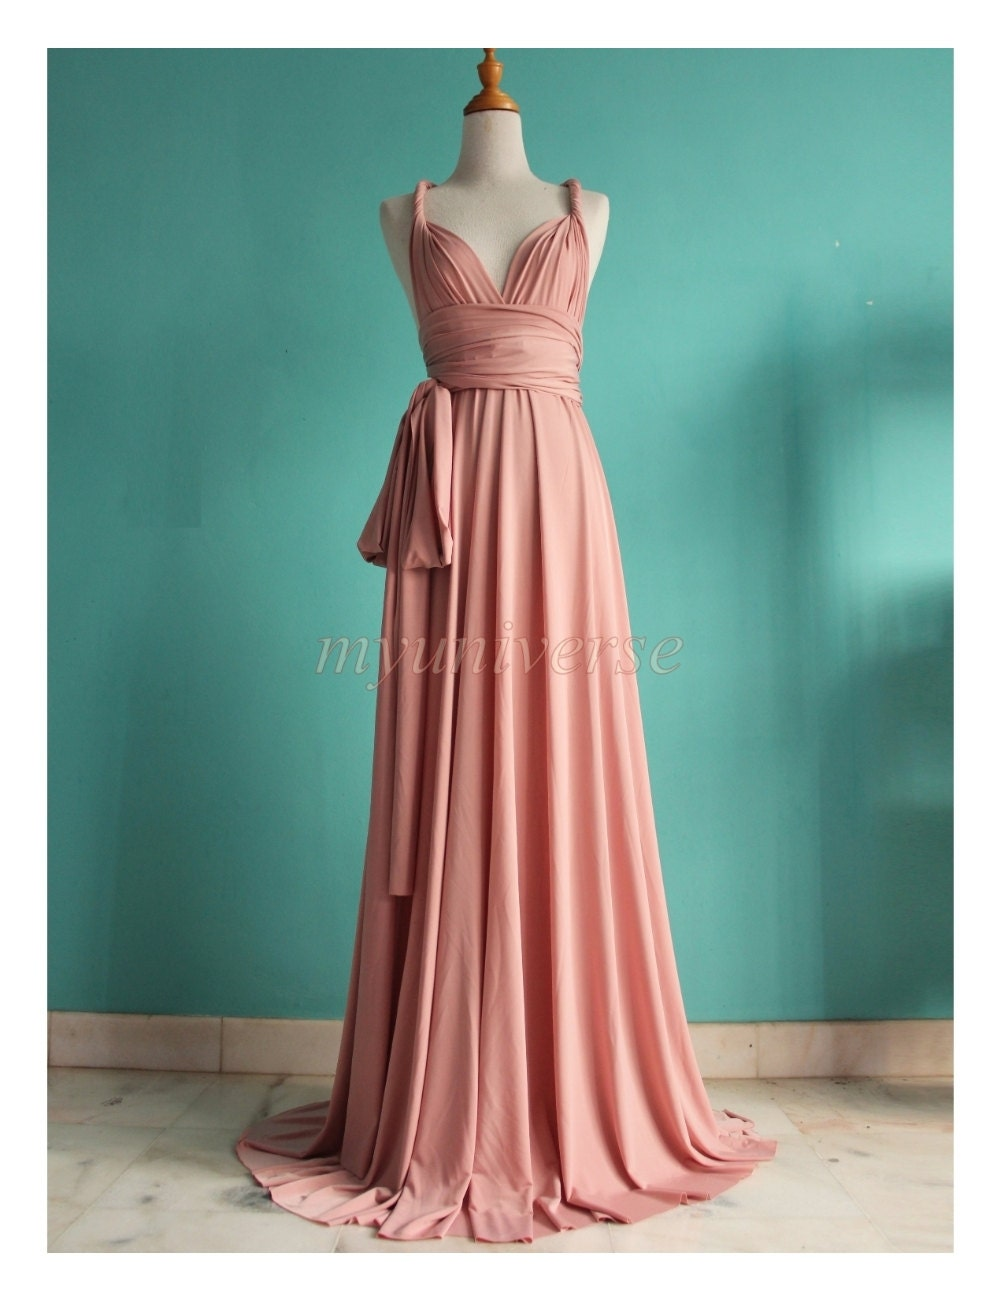 Dusty Pink Wedding Bridesmaid Dress Wrap Convertible By